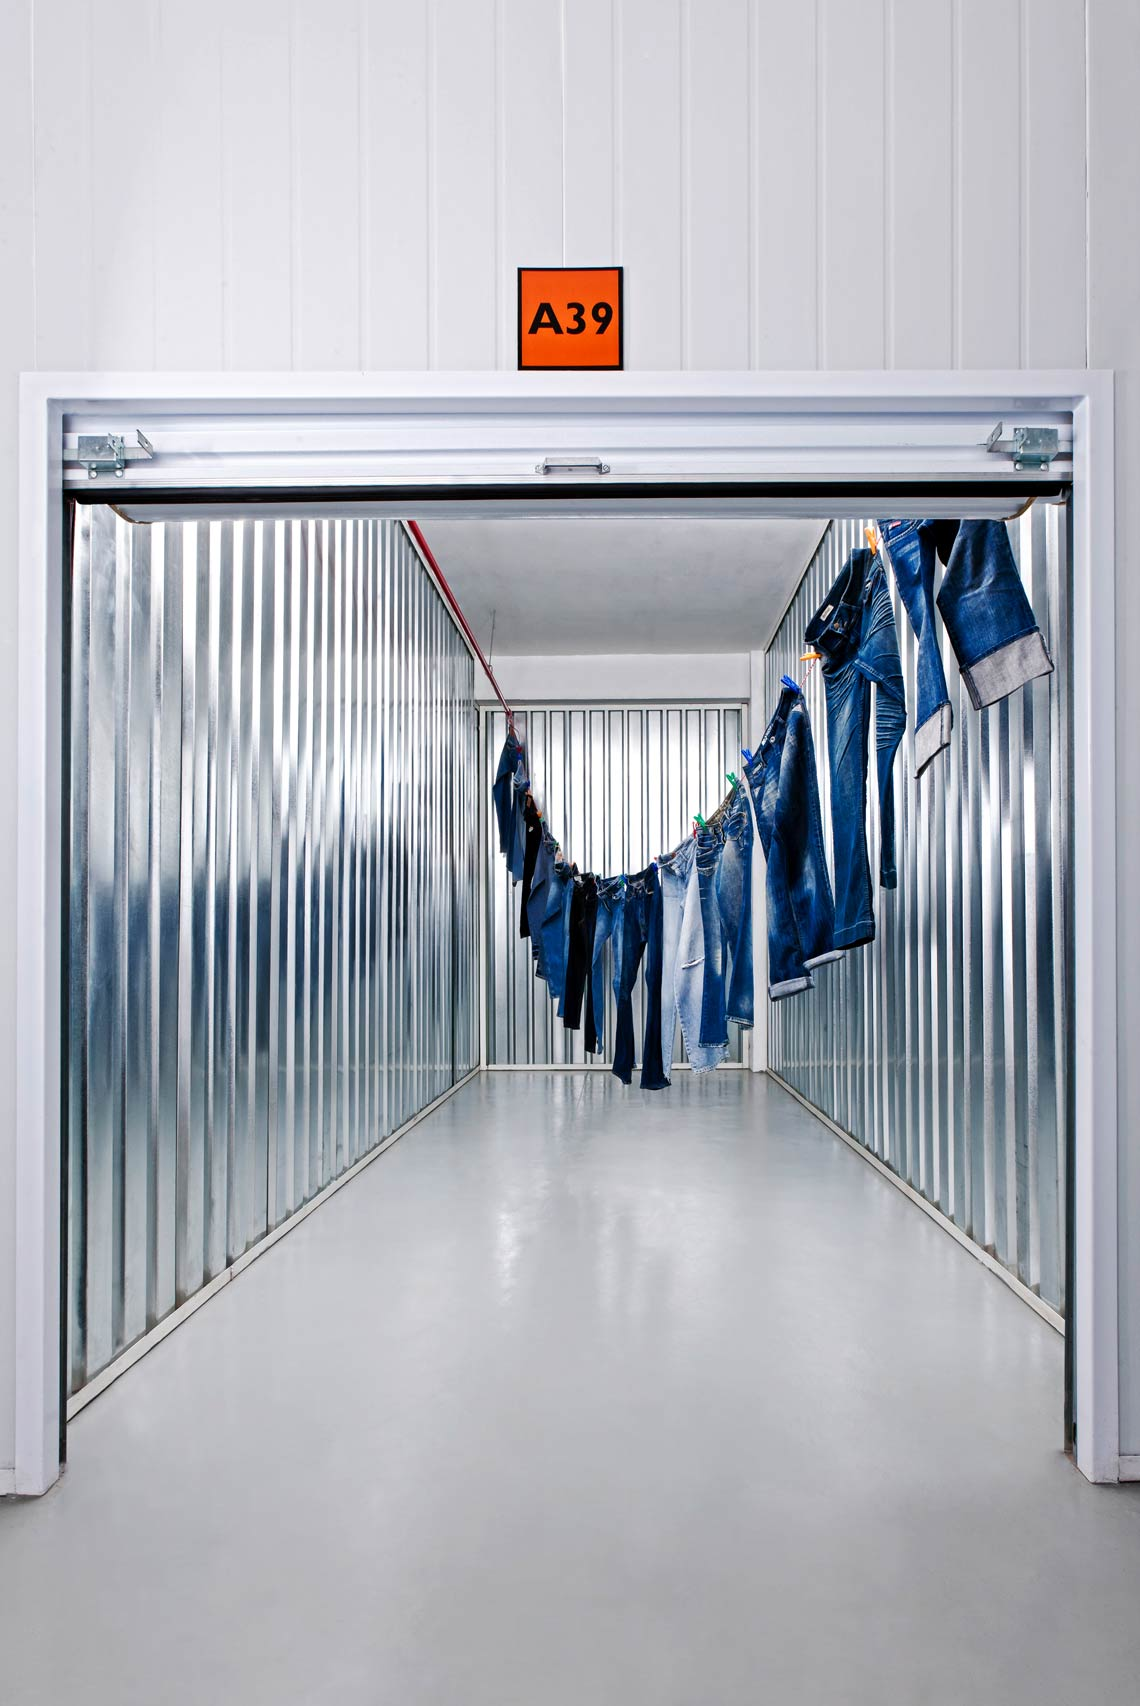 A 16 square meter storage unit spanned by a washing line full of countless pairs of jeans.